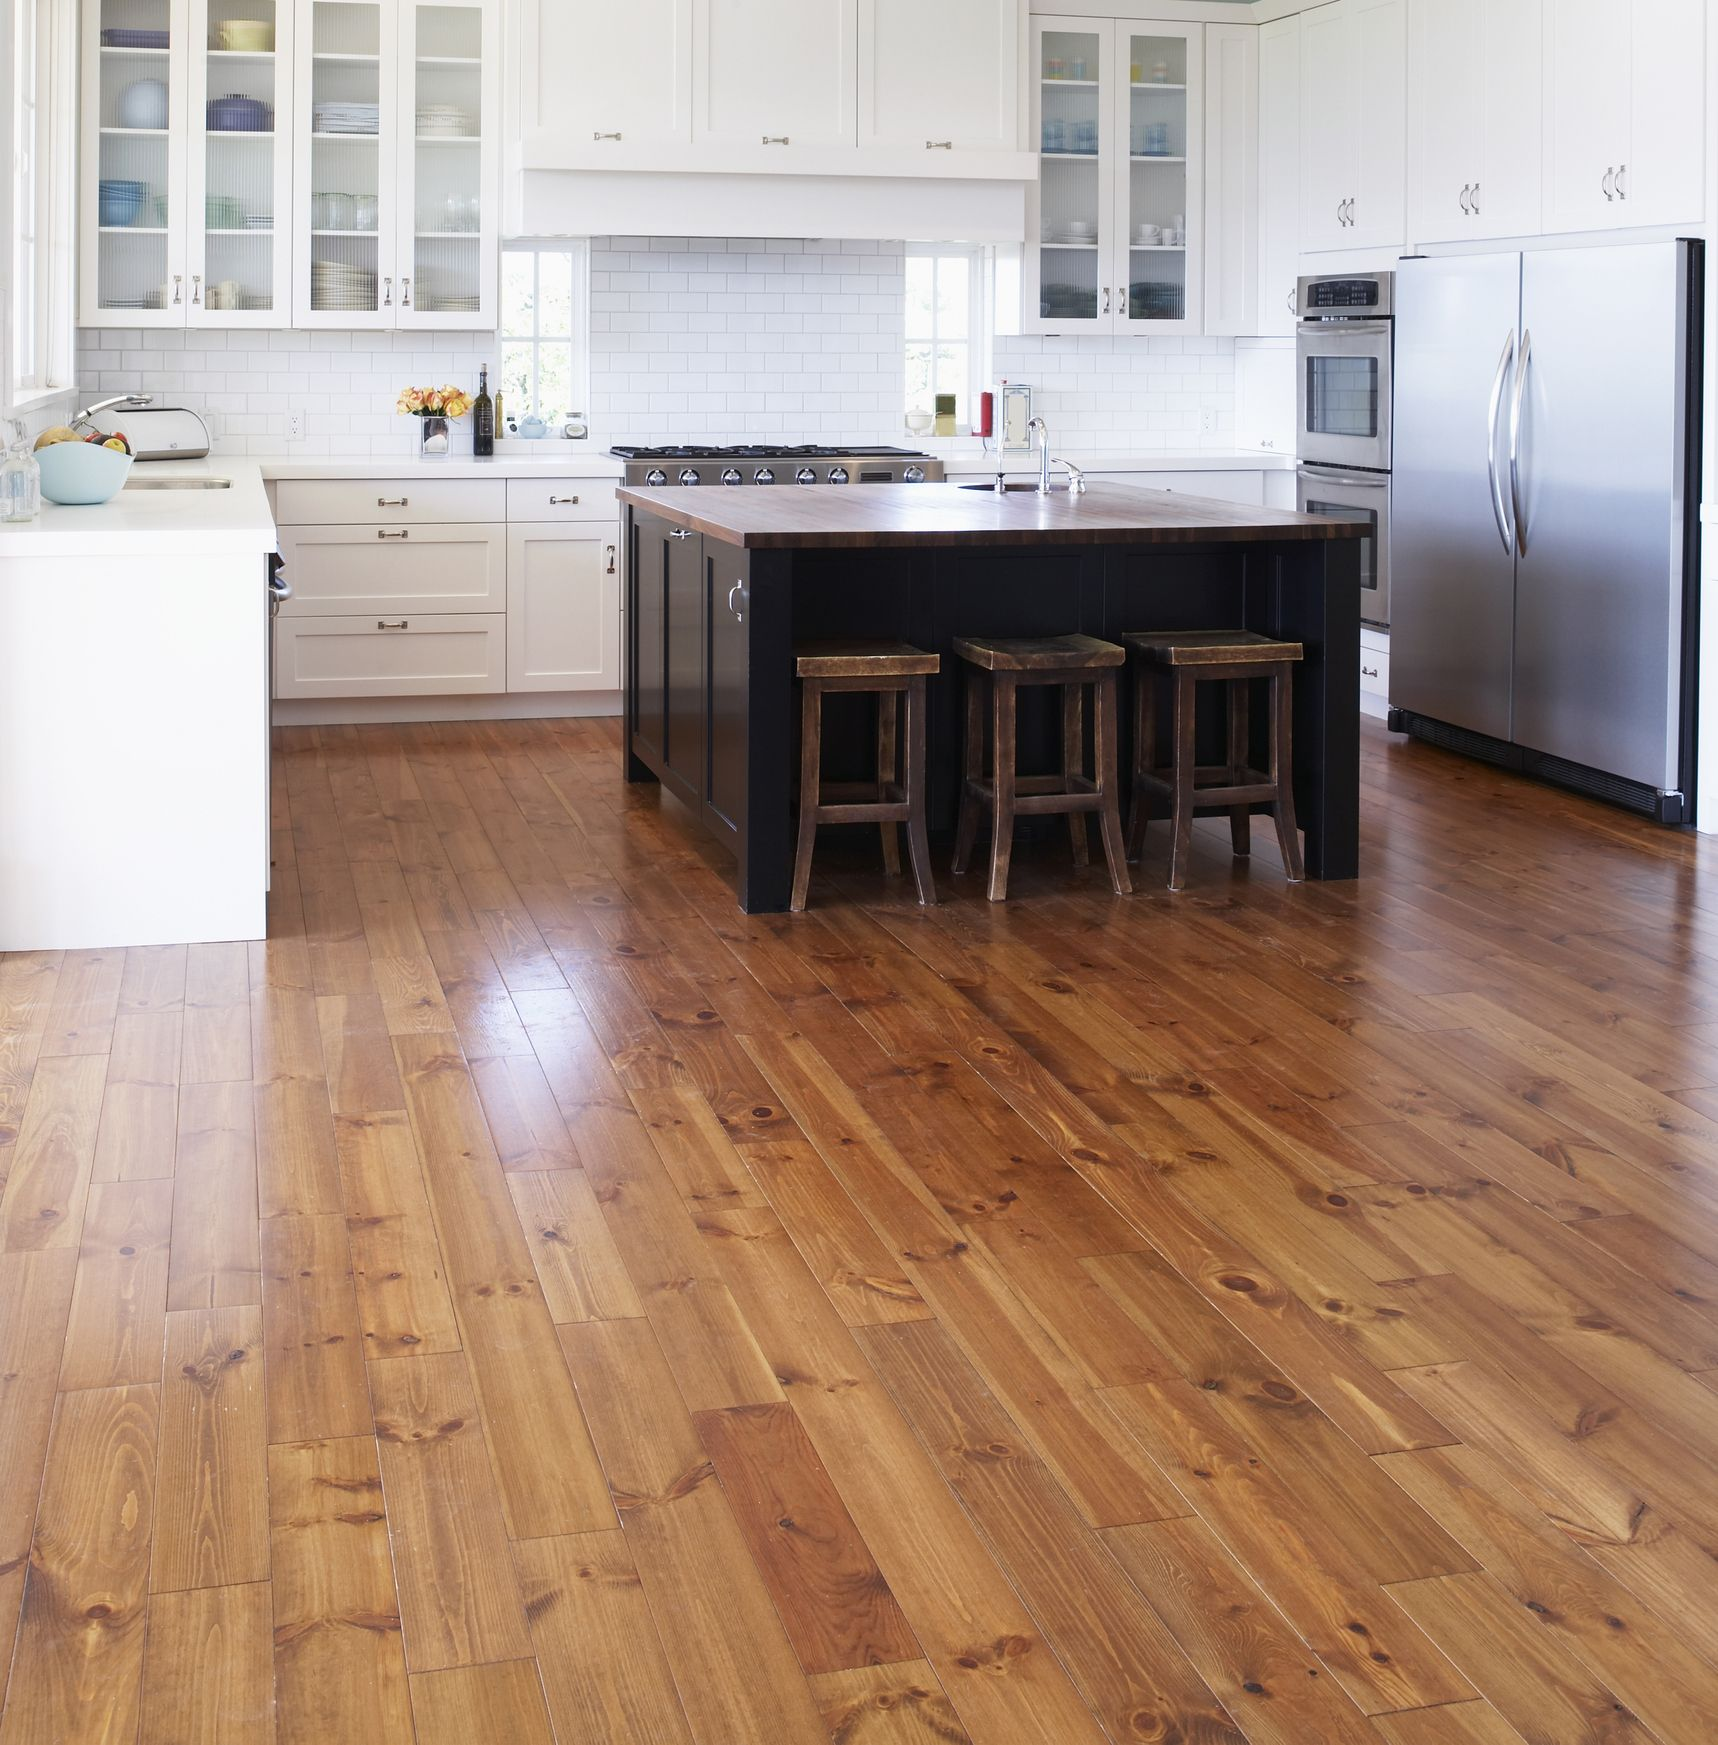 The 10 Best Cleaning Products to Make Your Hardwood Floors Sparkle